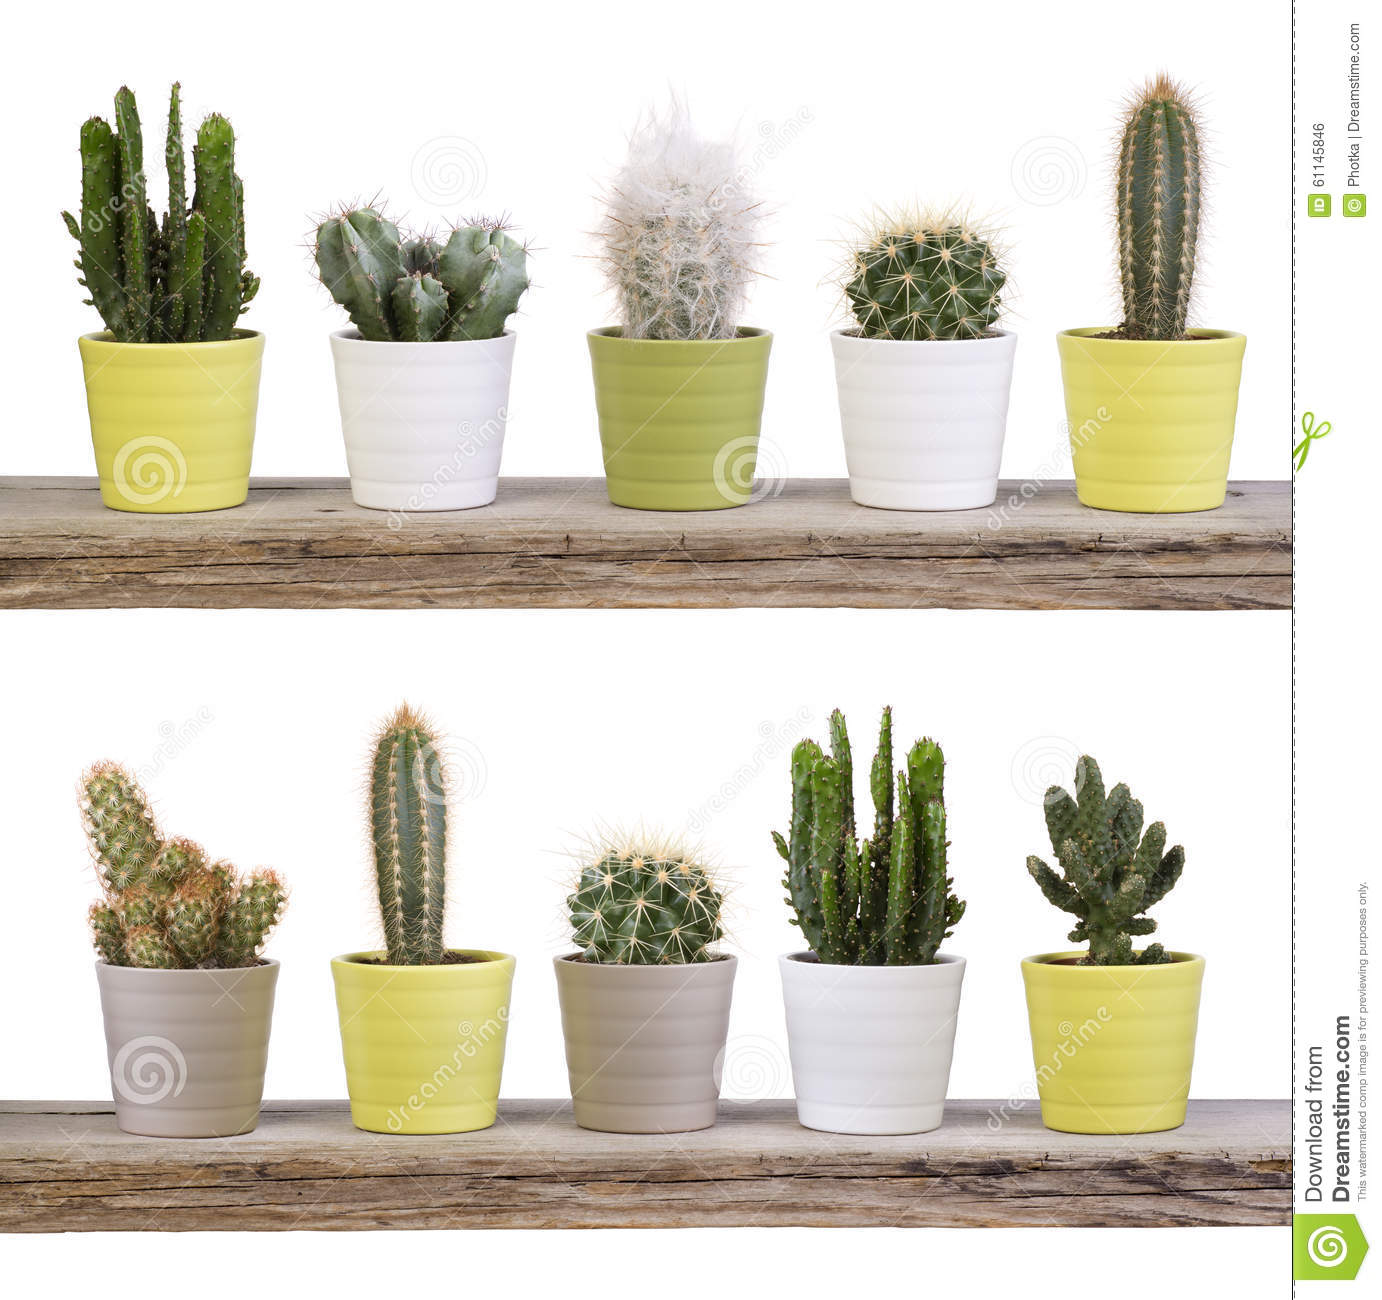 Cactus collection on wooden shelves isolated on white